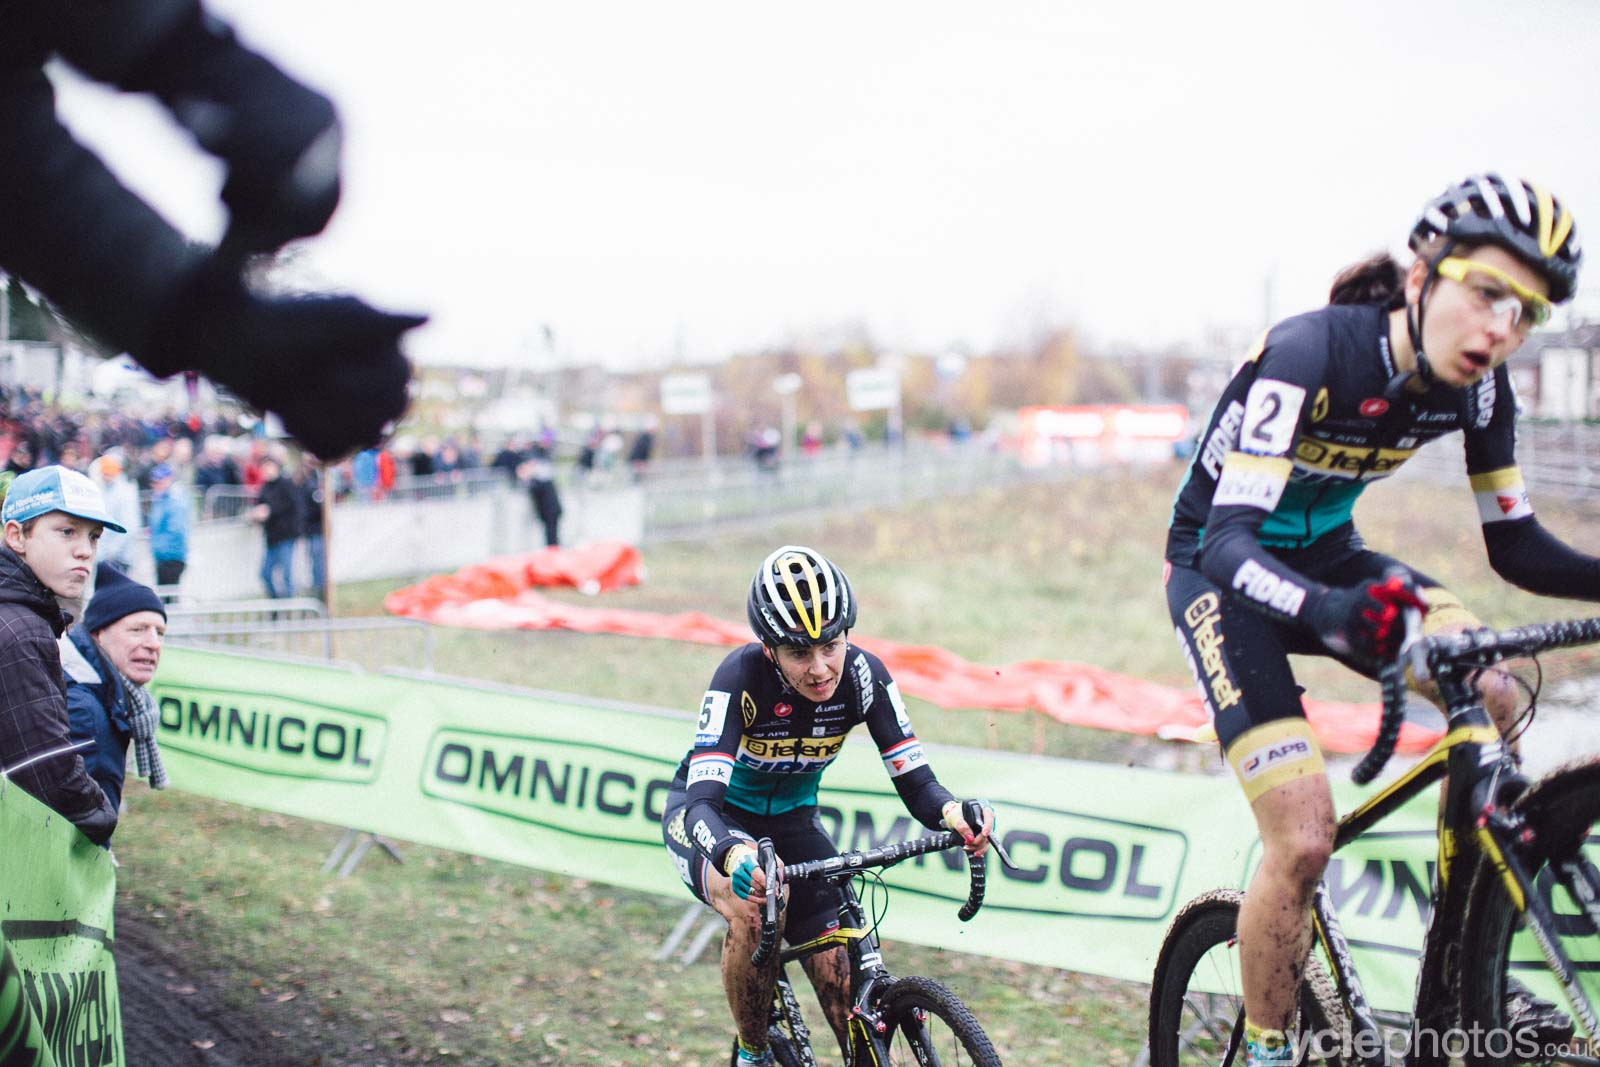 2015-cyclephotos-cyclocross-essen-135518-nikki-harris